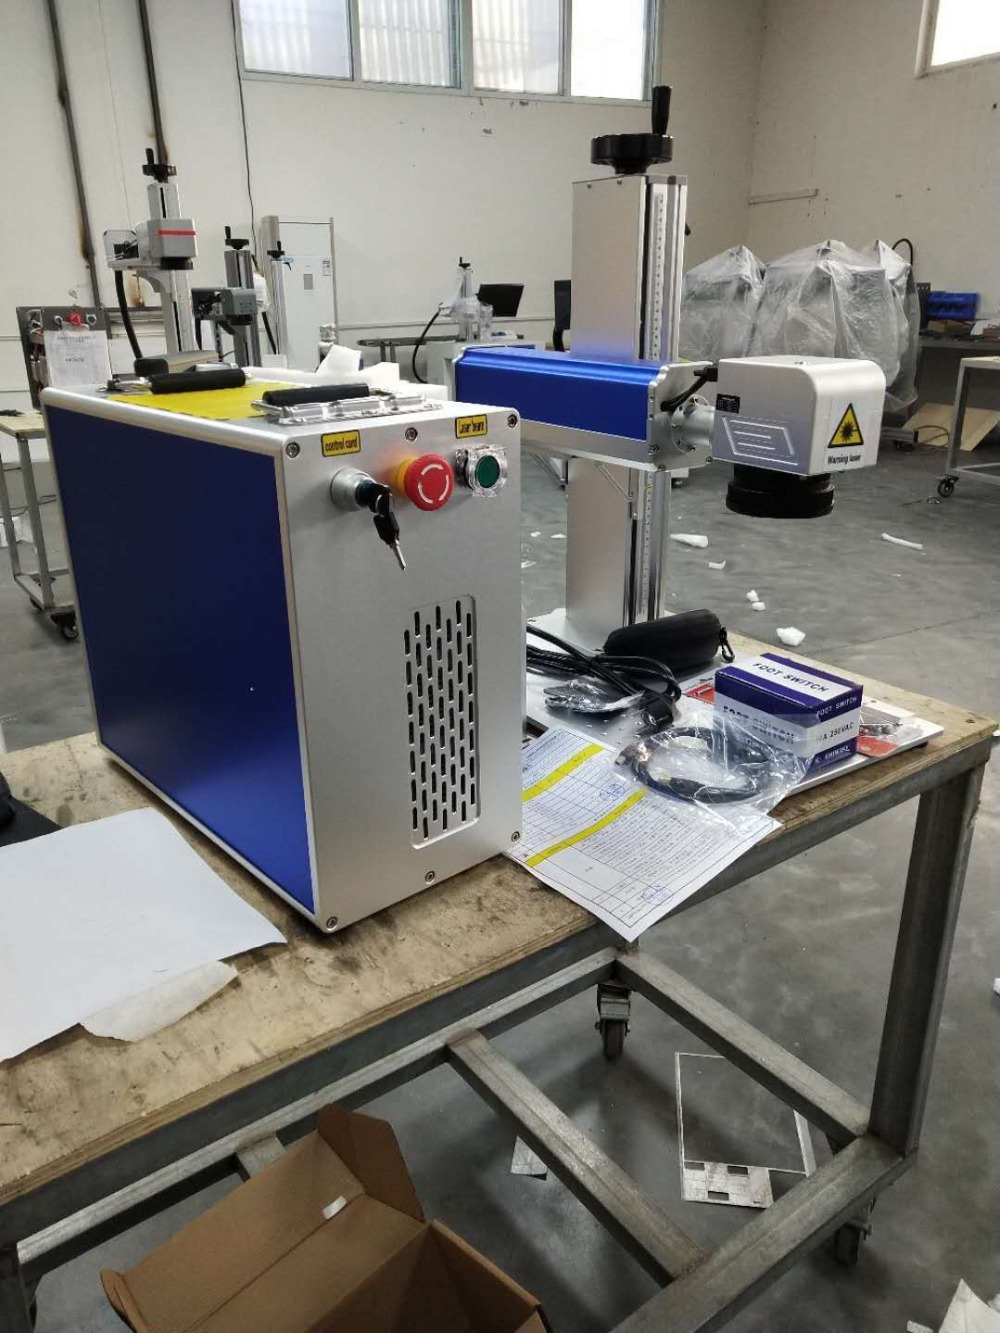 30W MAX Raycus And JPT Fiber Laser Marking Machine With 200-200mm Working Table 9